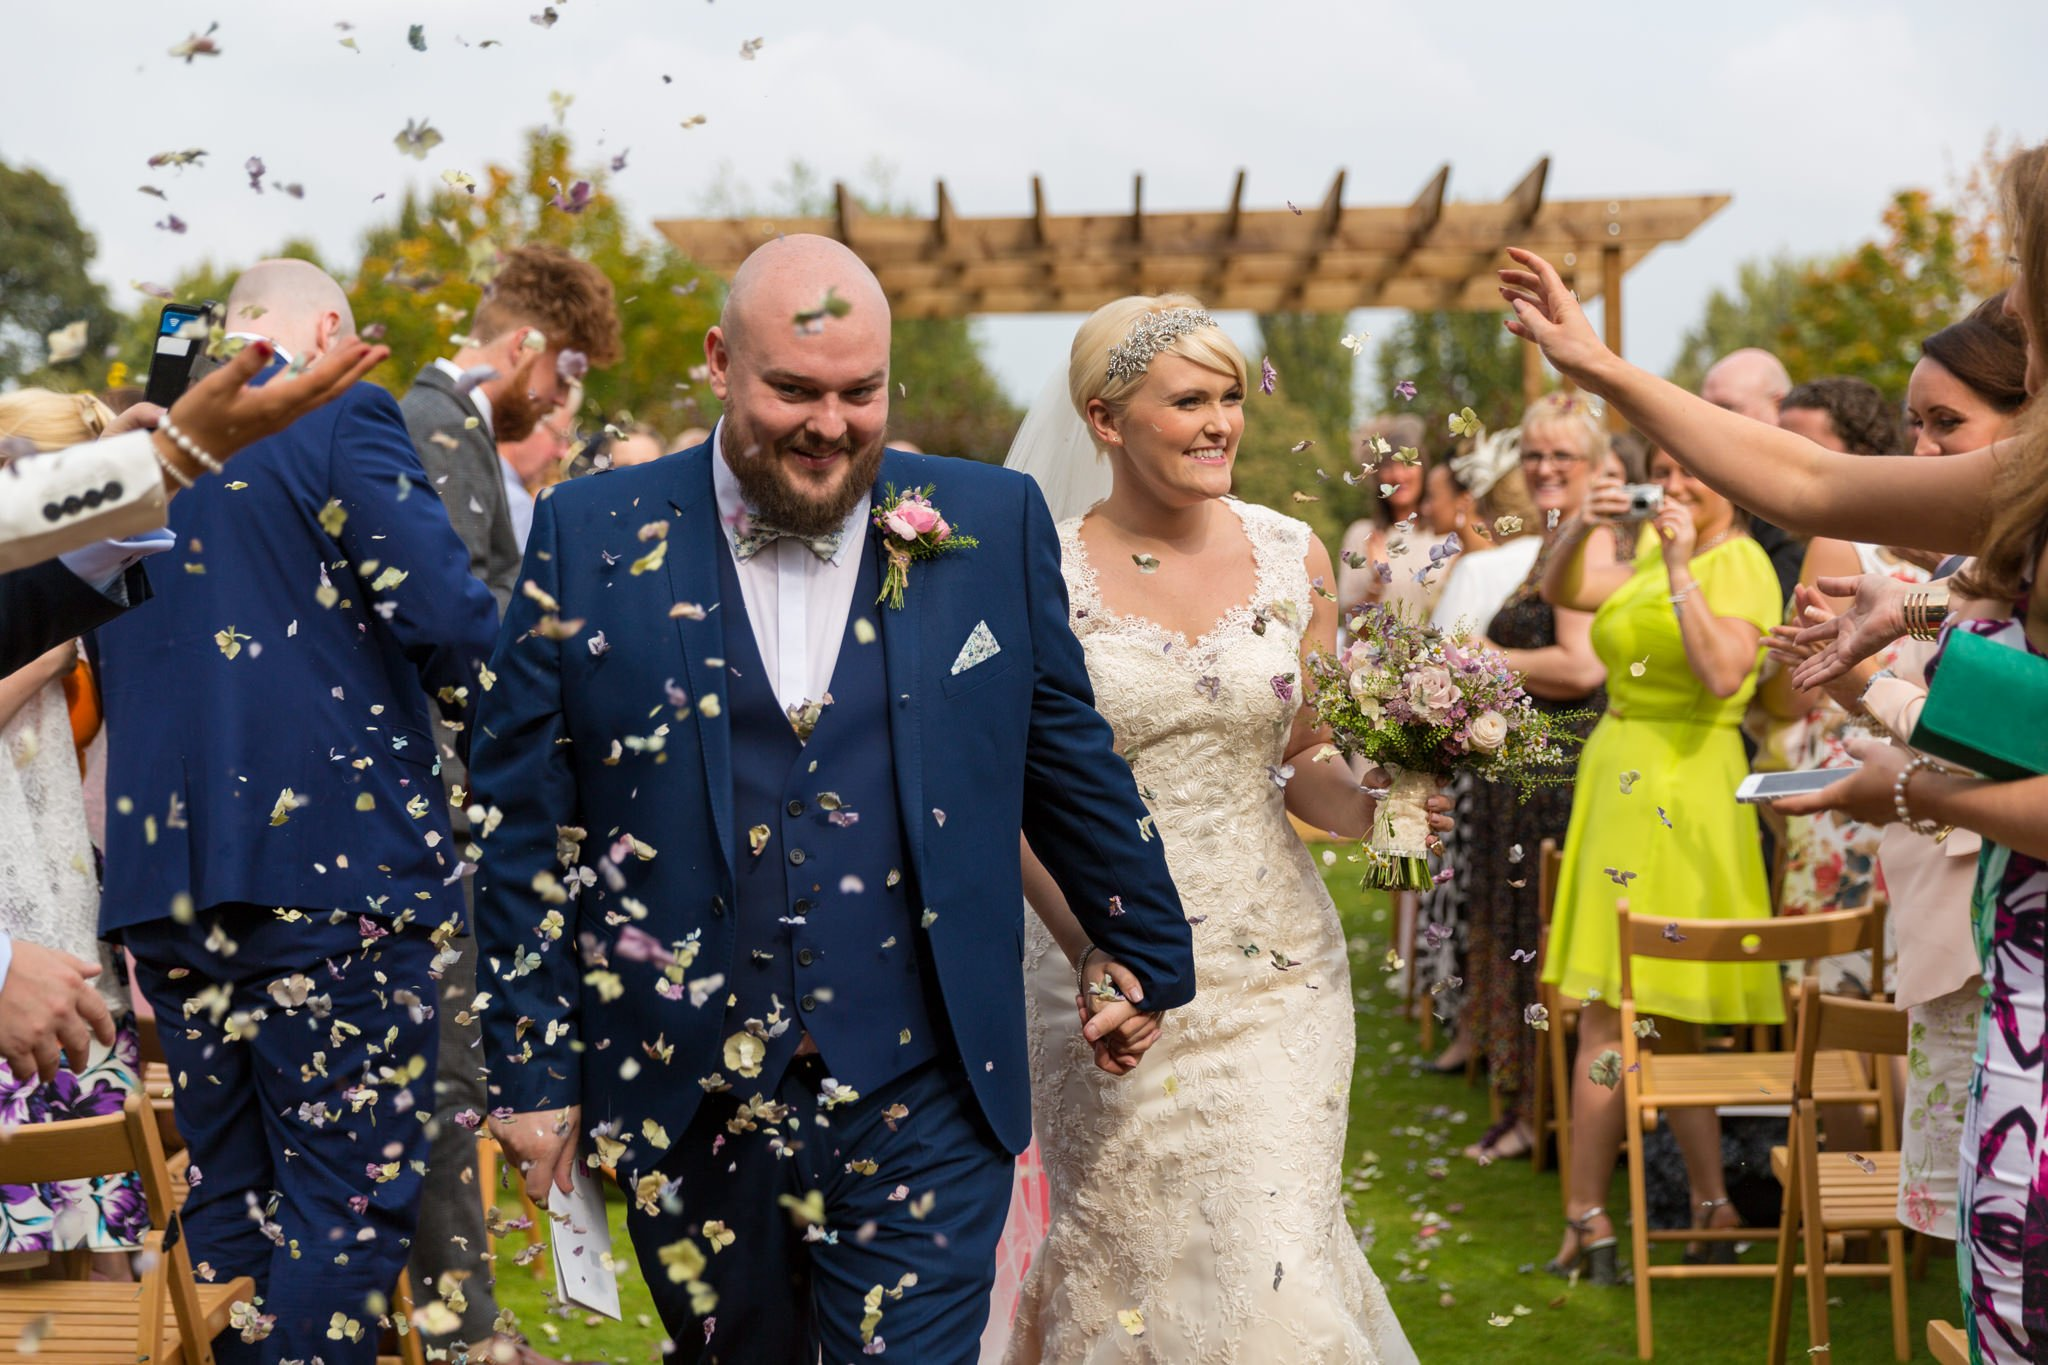 Tipi-Wedding-Photography-Cheshire-Photographer-20140913--10007